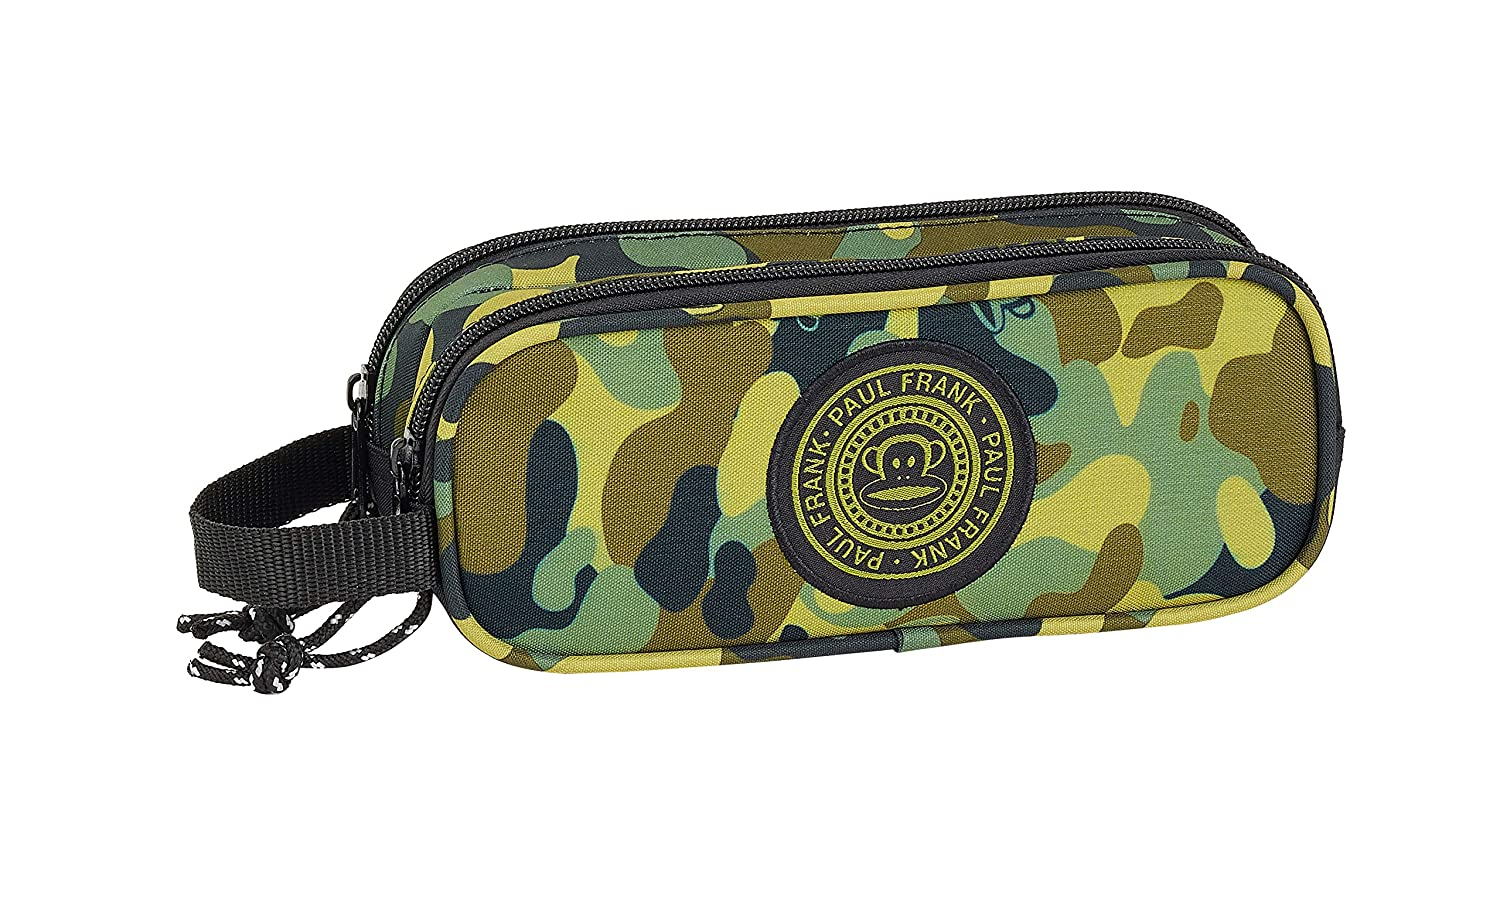 Paul Frank Camo Oficial Estuche Escolar 210x60x80mm: Amazon ...